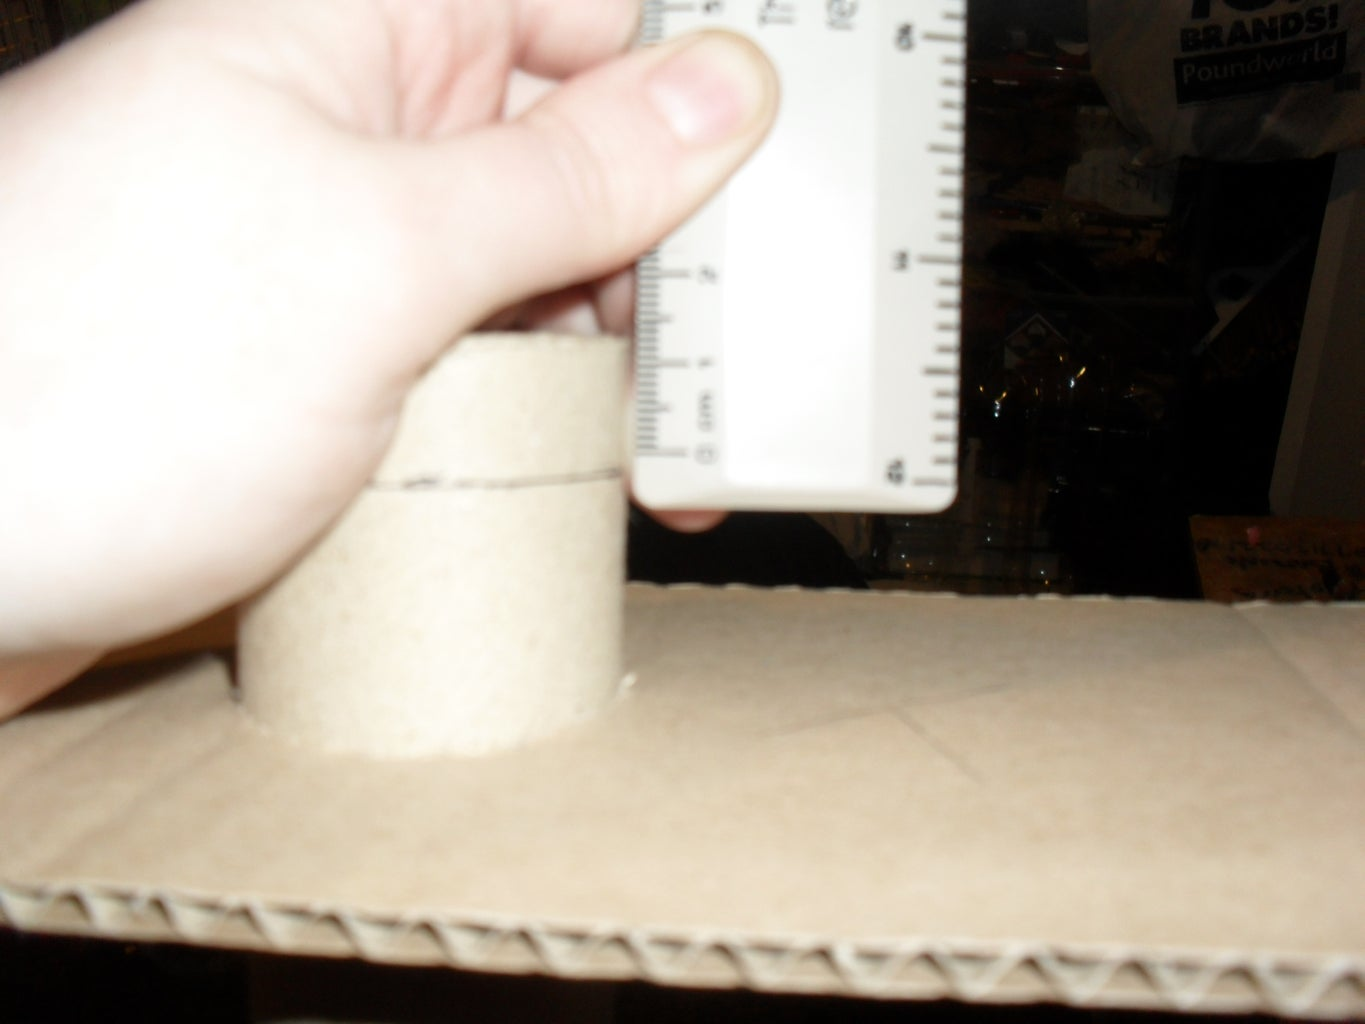 9b. Glue the Handle in Place